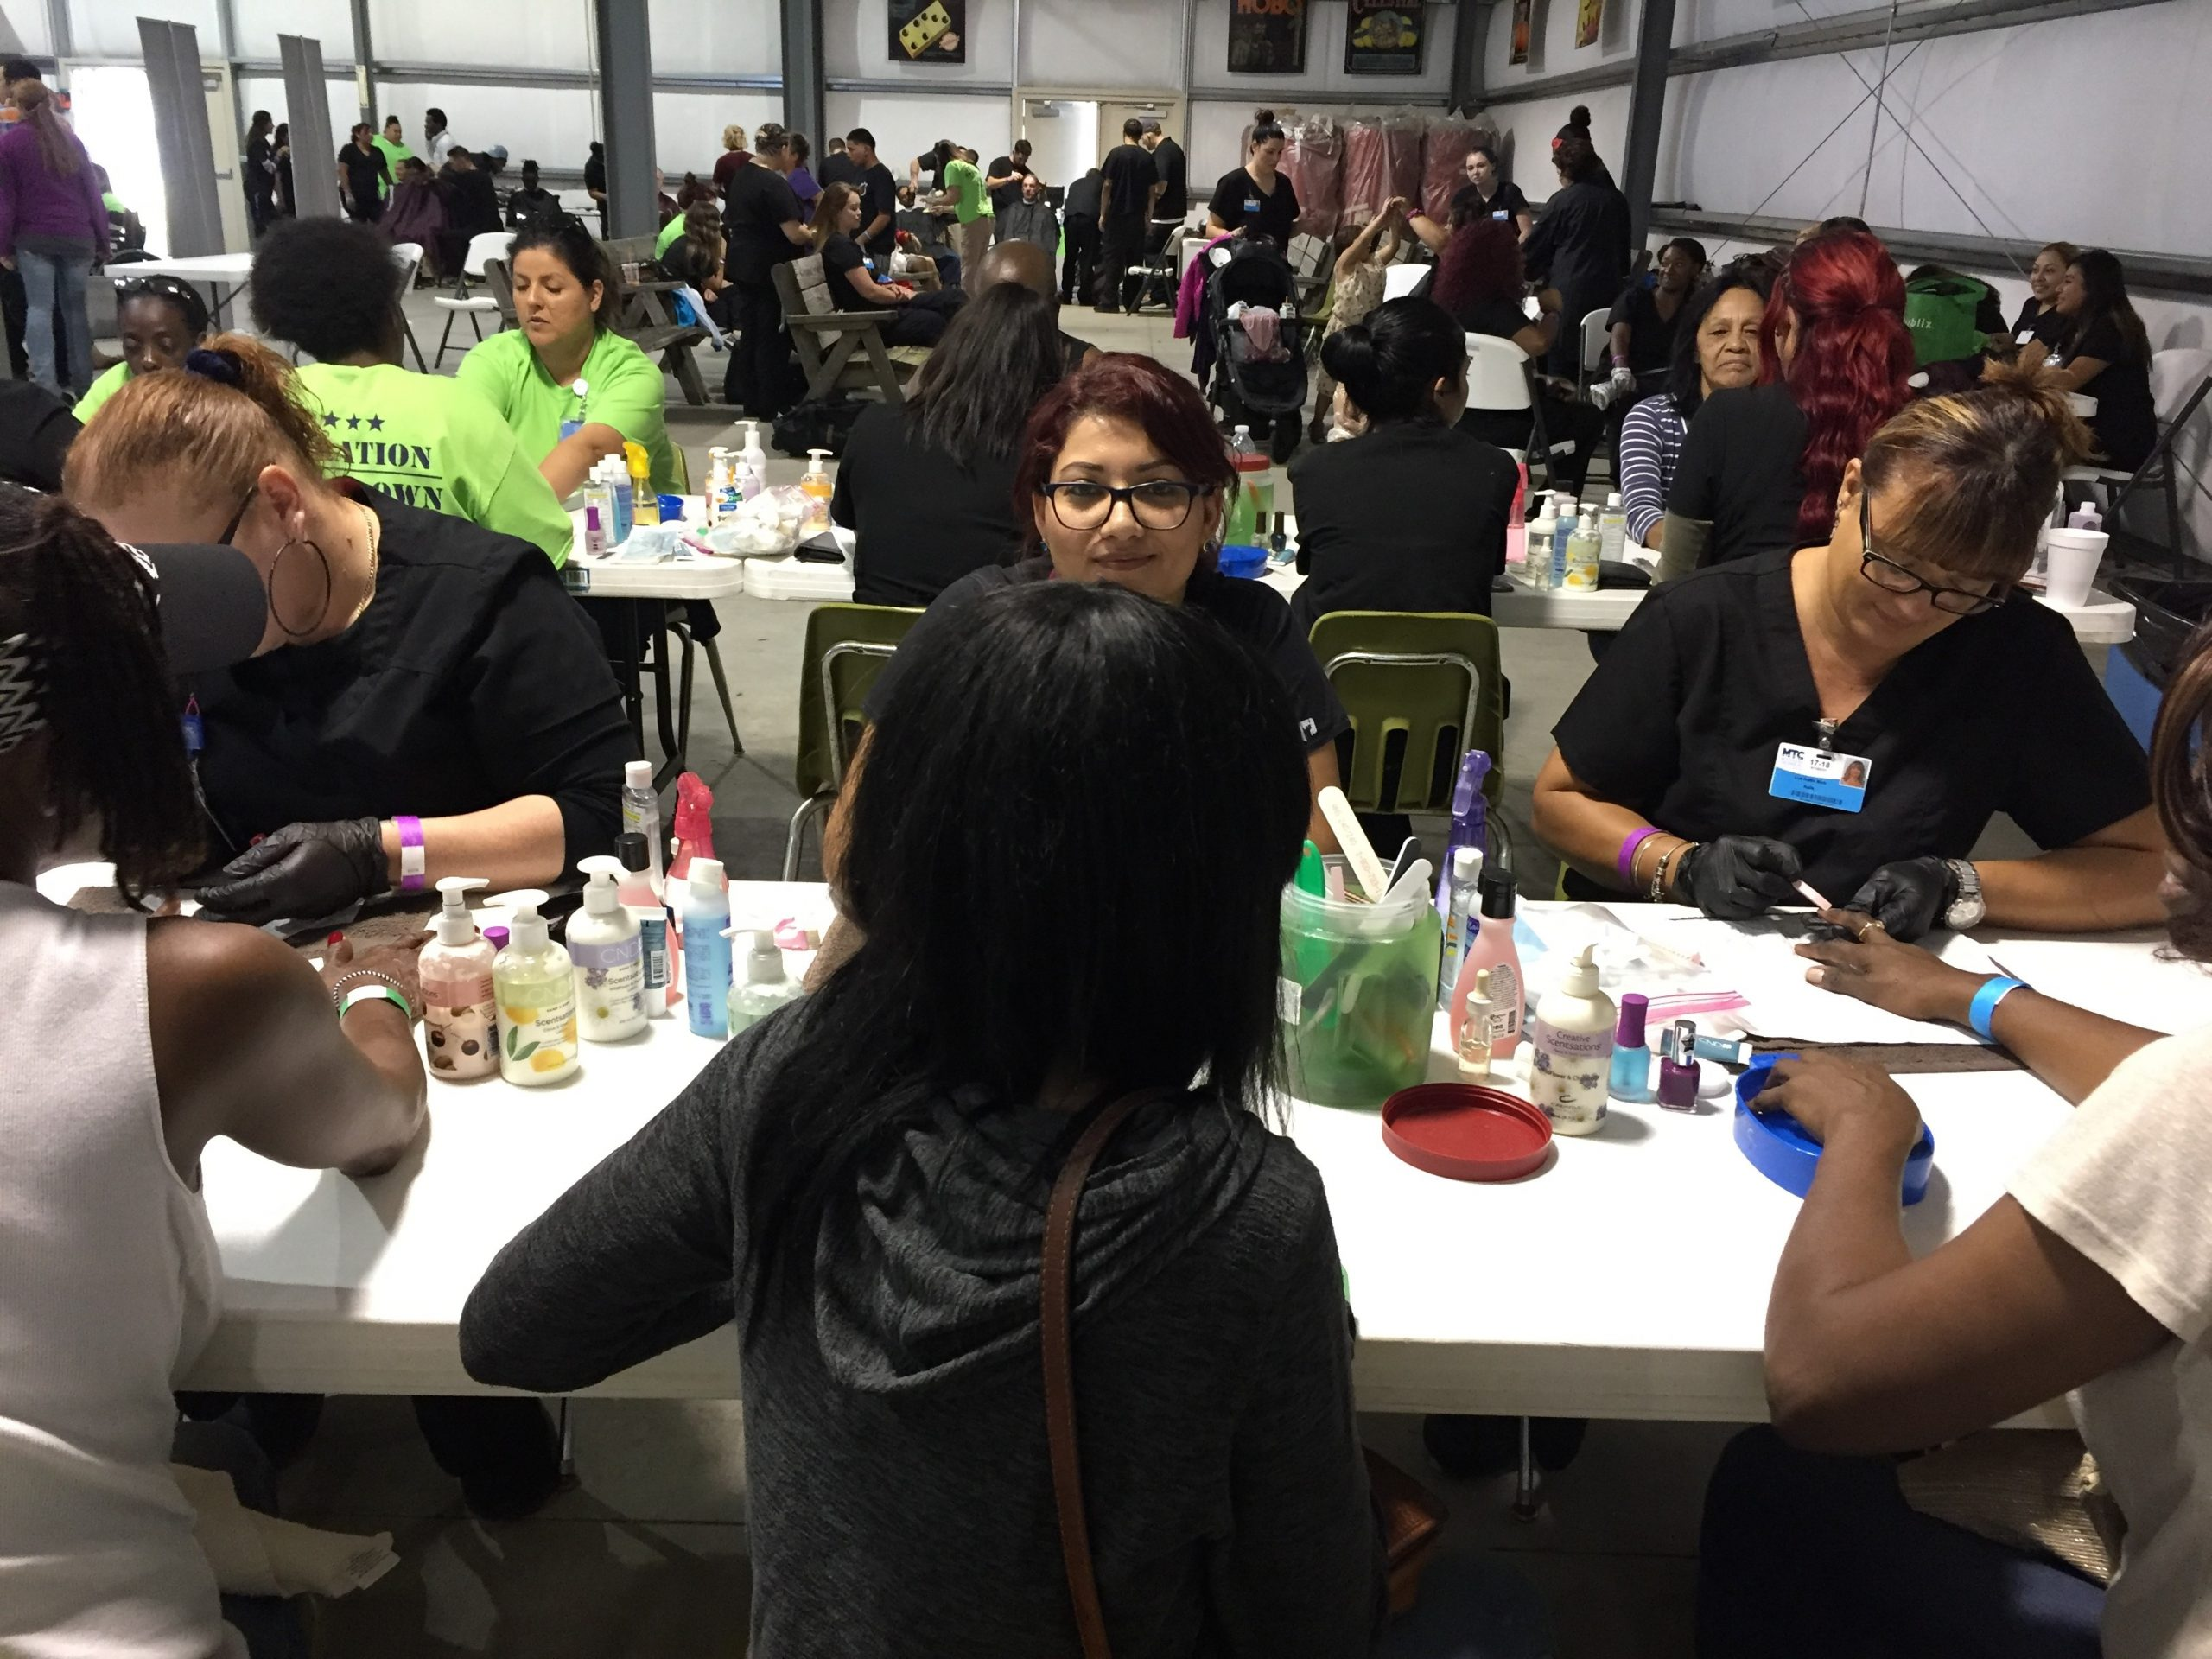 MTC Nail Tech and Cosmo students help at Stand Down